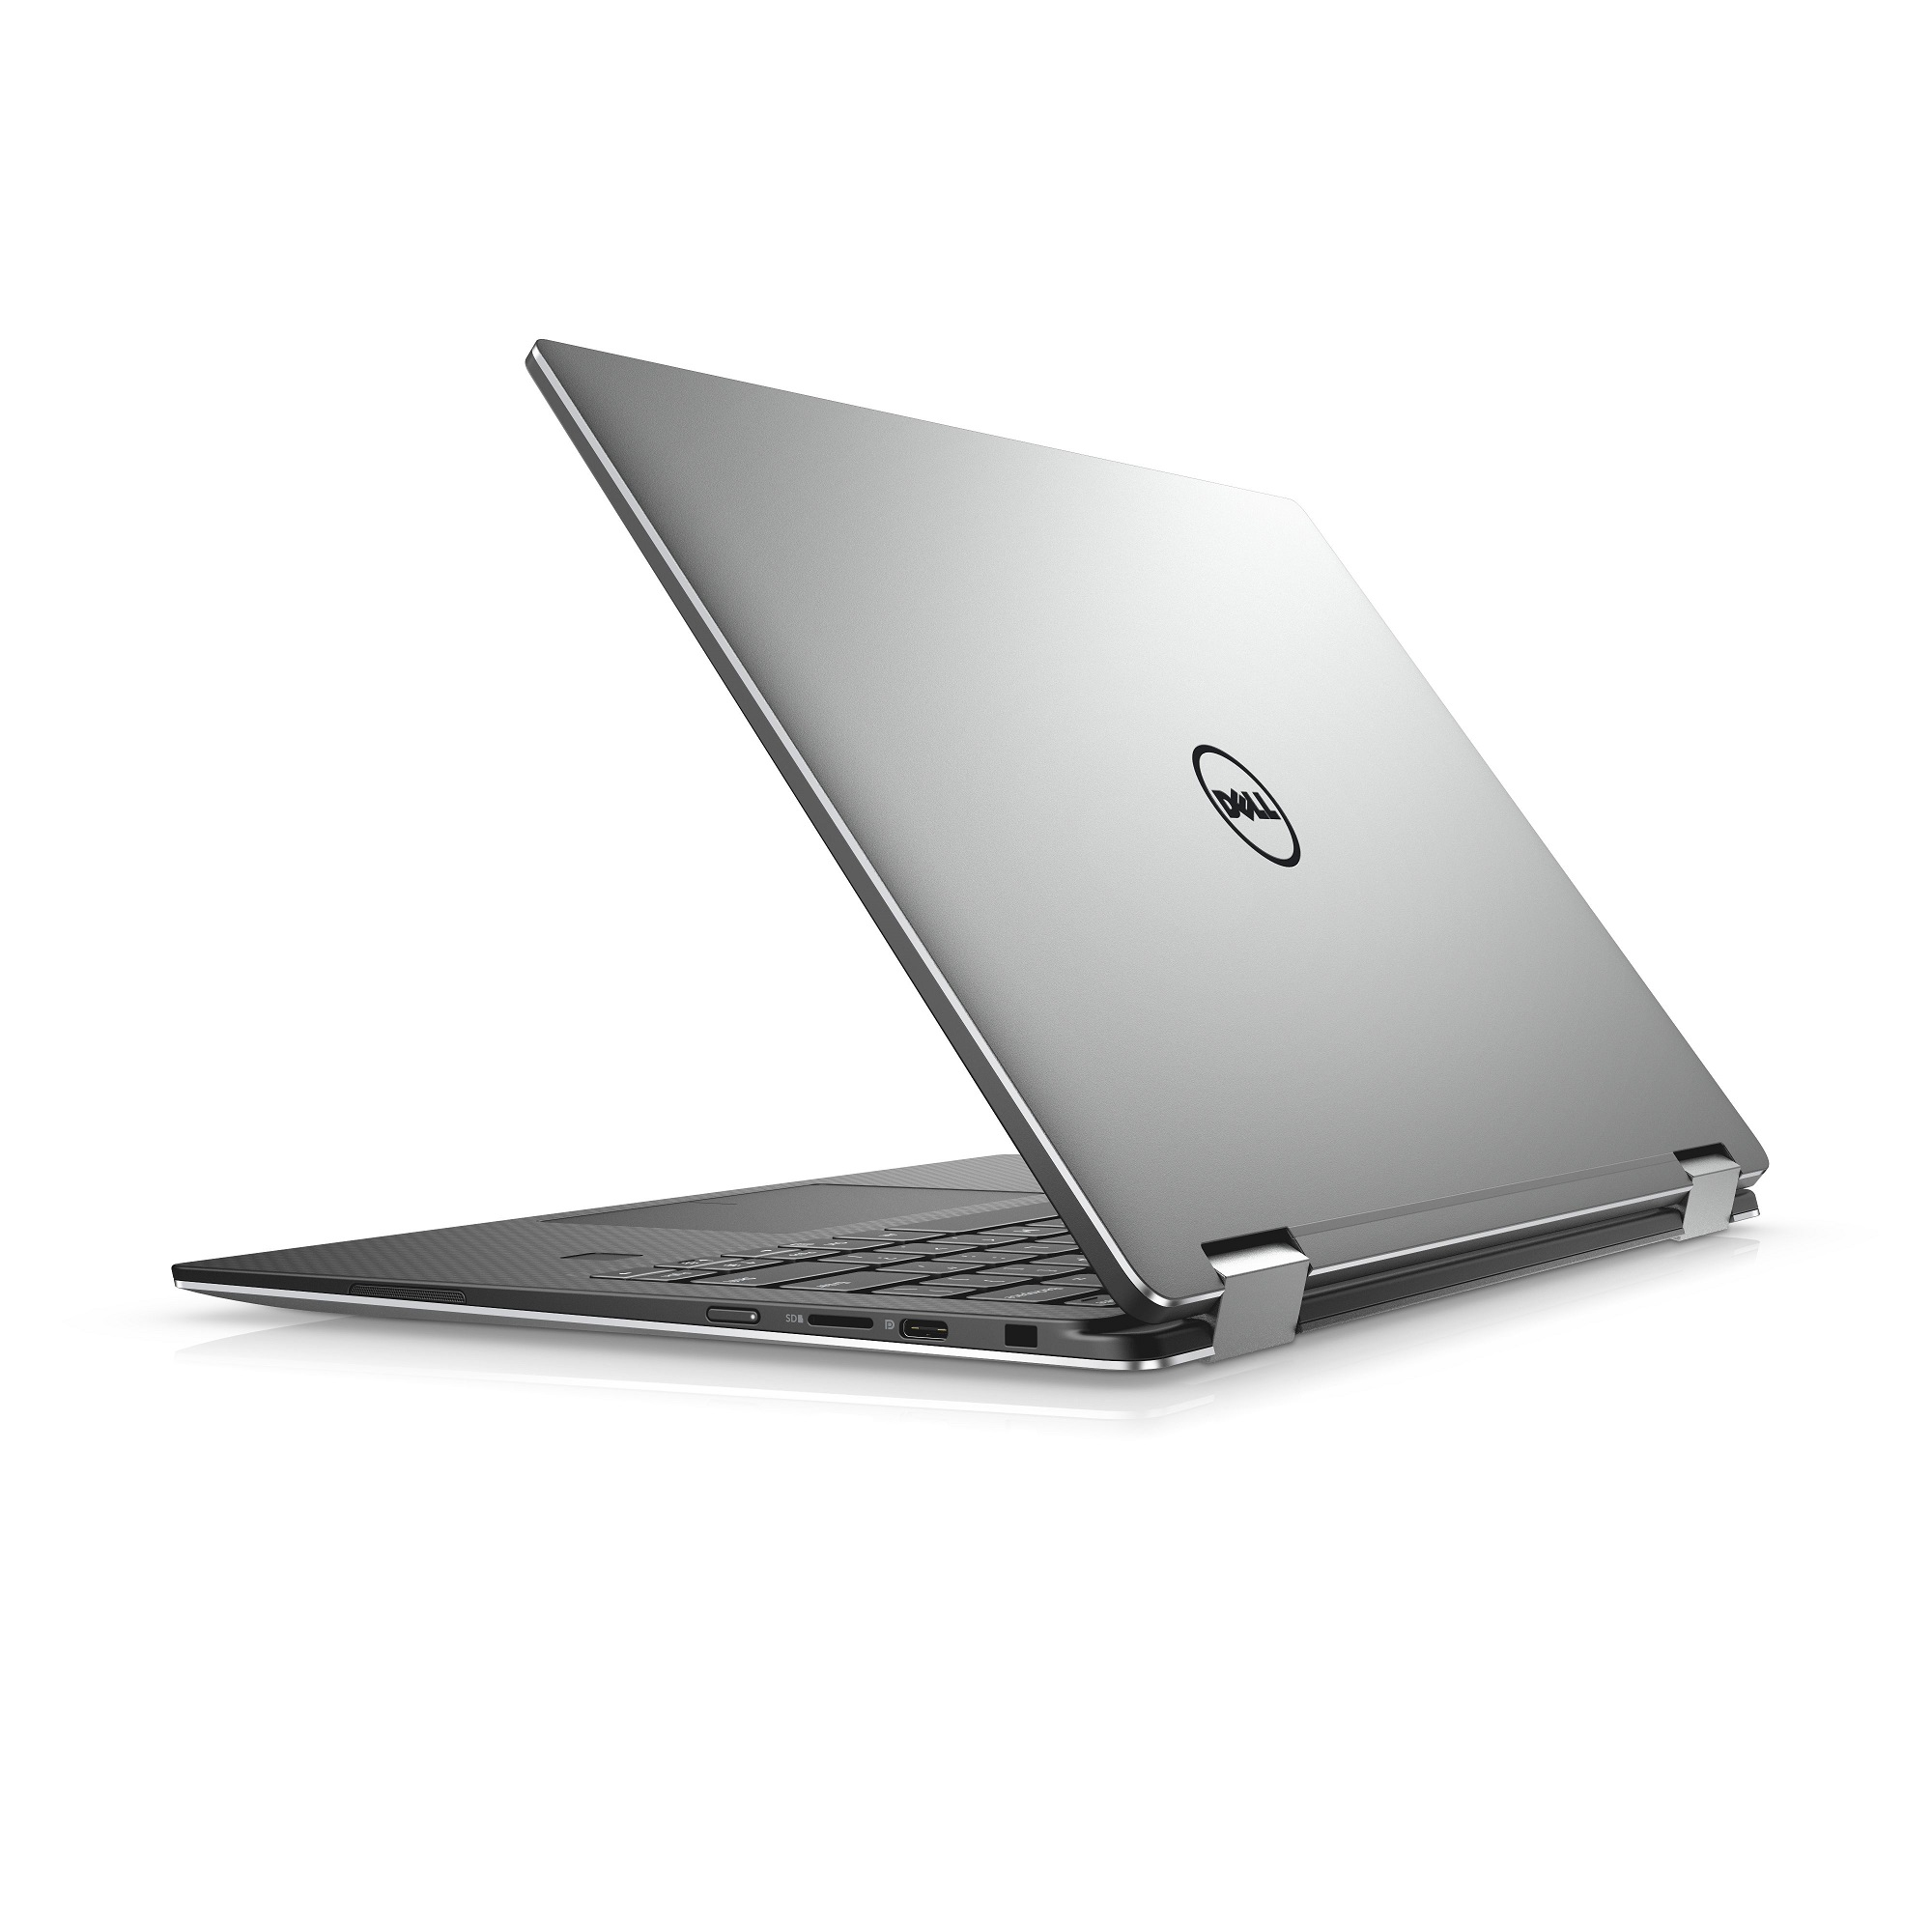 "DELL Ultrabook XPS 13 (9365)/i5-7Y54/8GB/256GB SSD/Intel HD 615/13.3"" QHD+ Touch/Win 10 MUI/Silver"